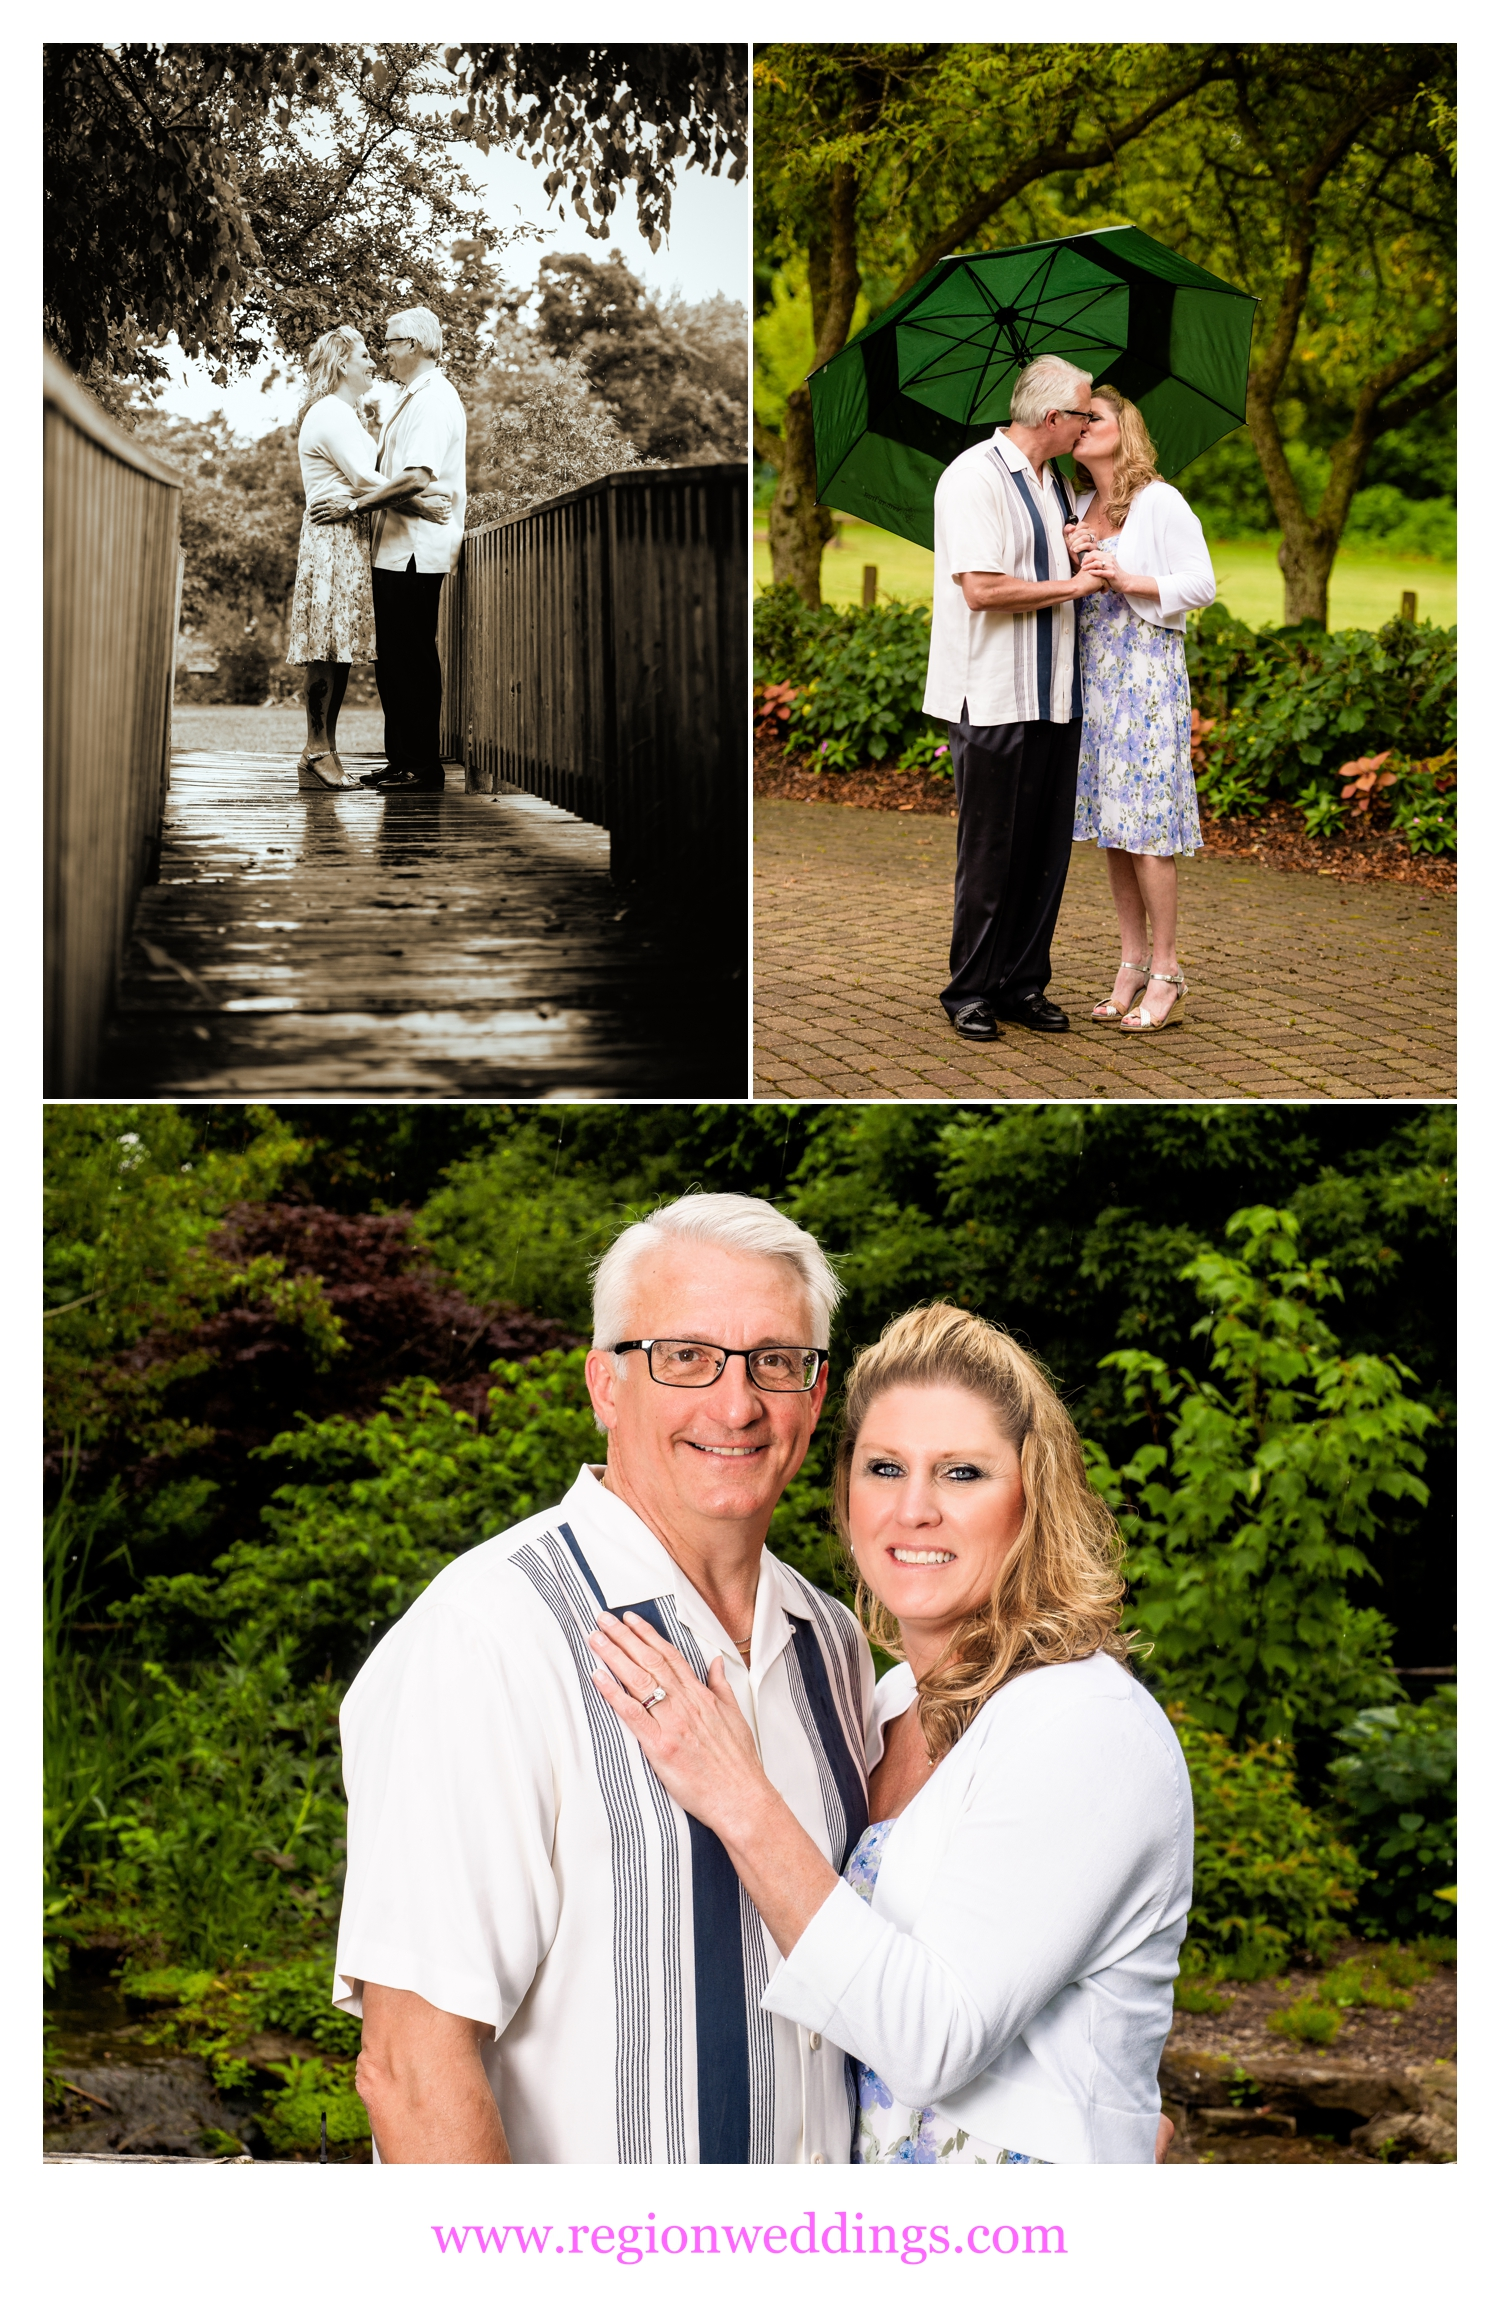 Romantic engagement photos at Ogden Gardens in Valparaiso, Indiana.